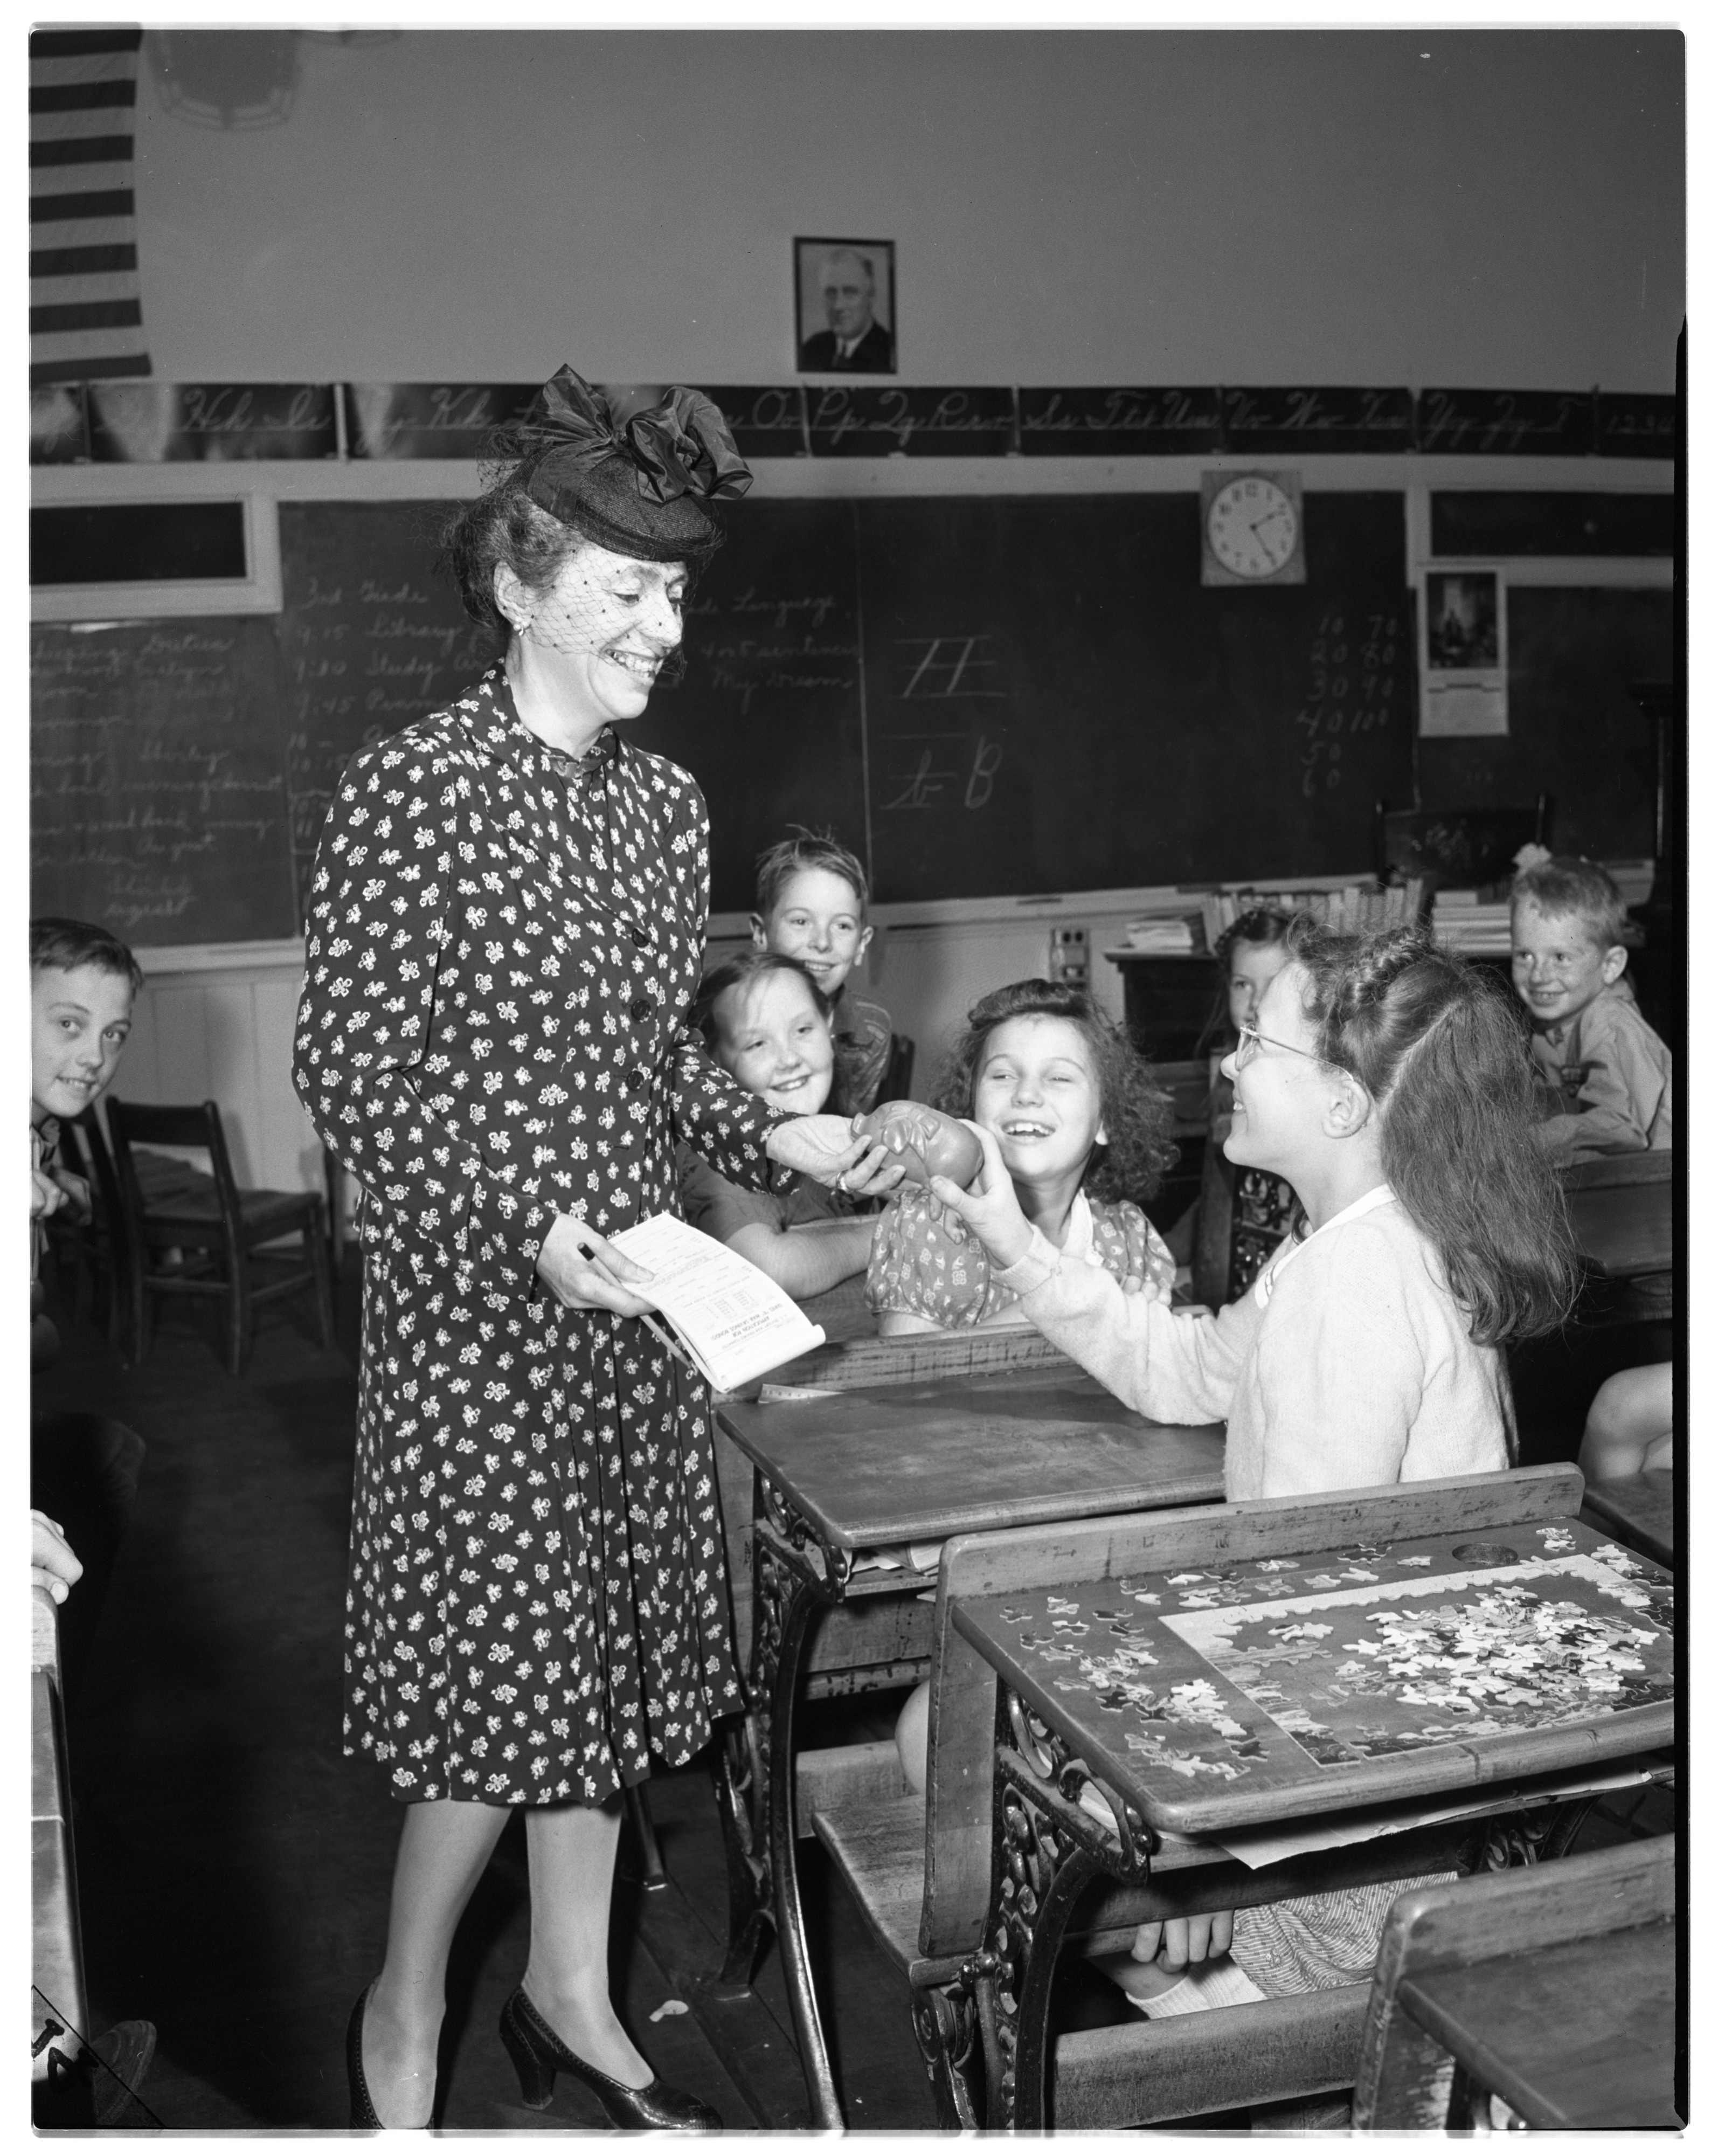 Phoebe Frederick Buys Bond From Piggy Bank at Popkins School, September 1943 image